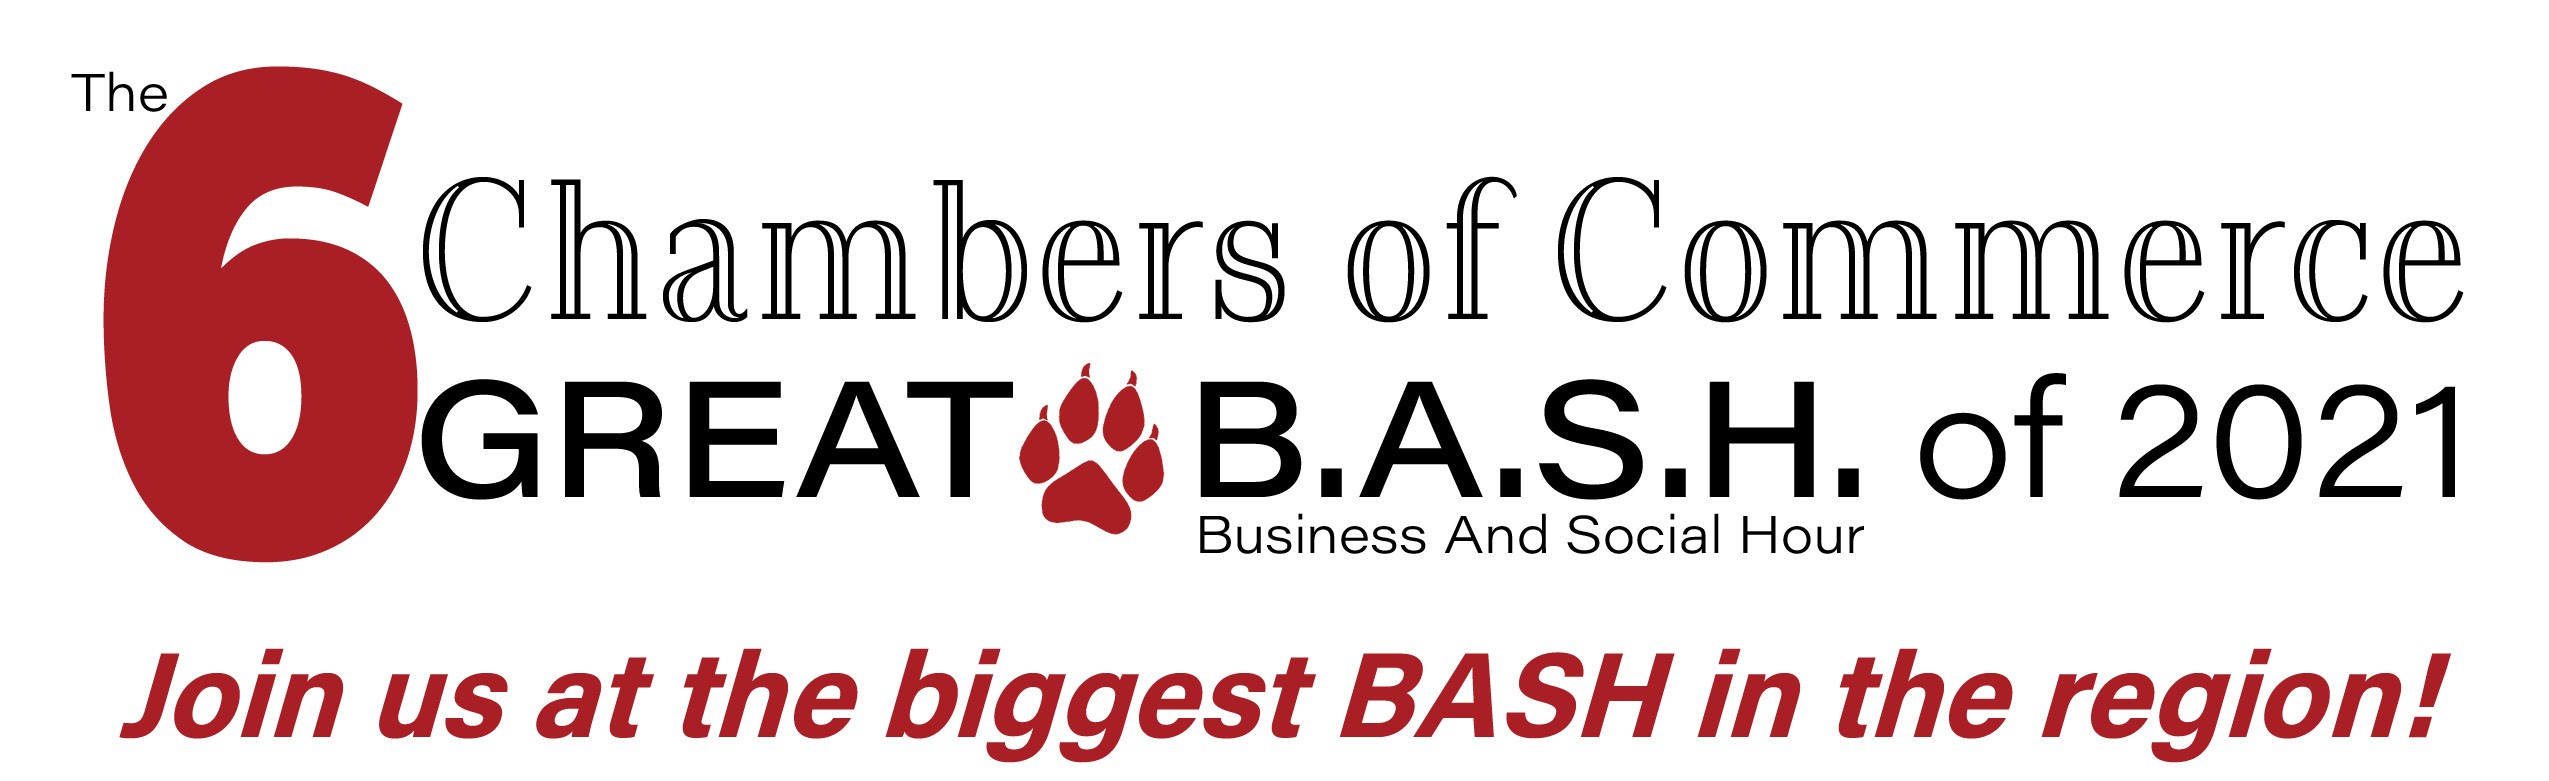 6 Chambers of Commerce Great B.A.S.H. of 2021 – Networking